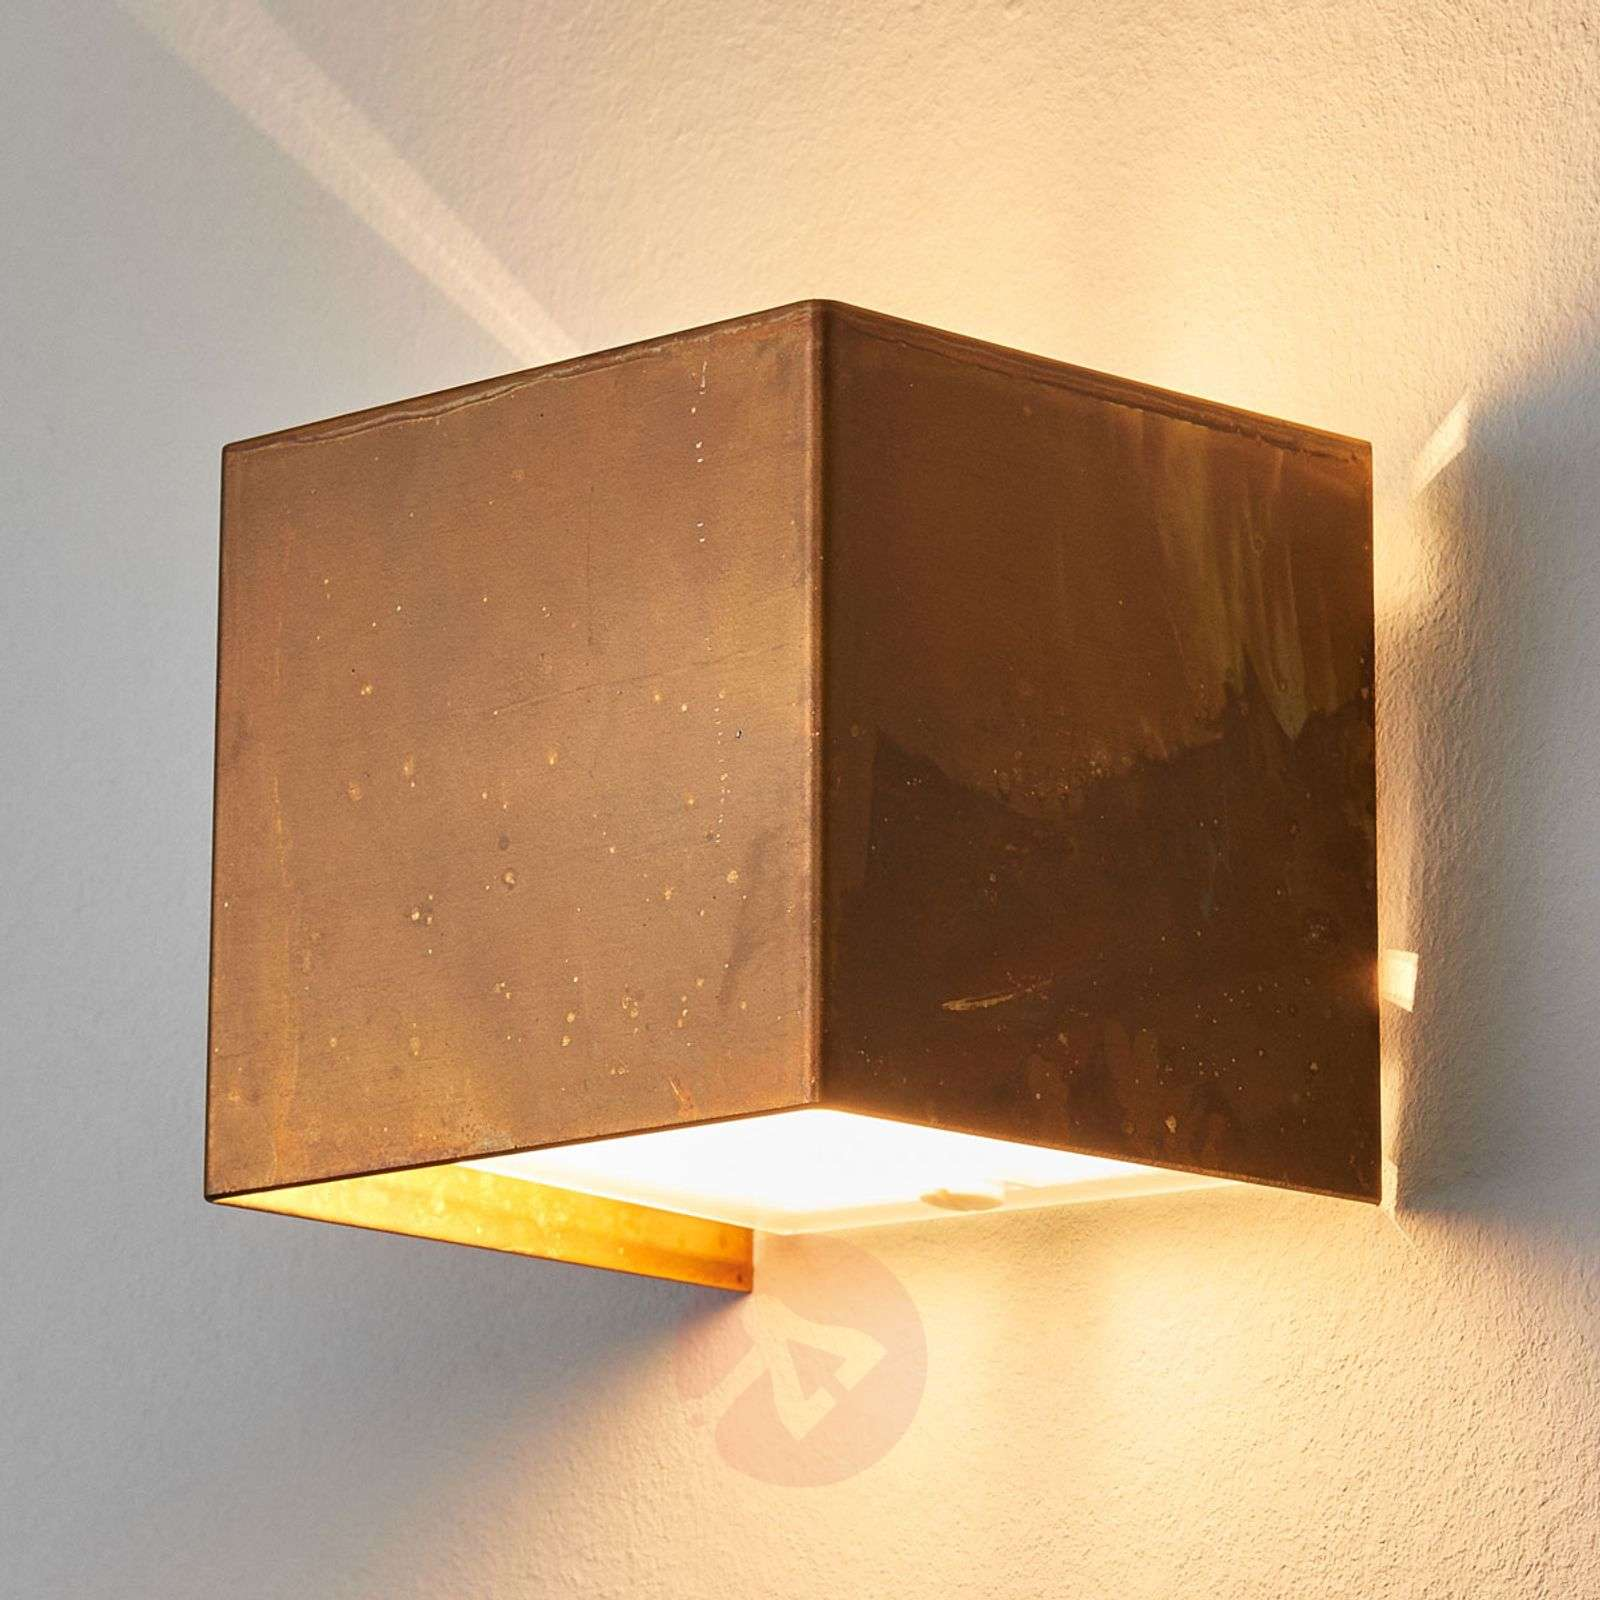 Wall lamp LOLA with oxidized brass-4011107-01